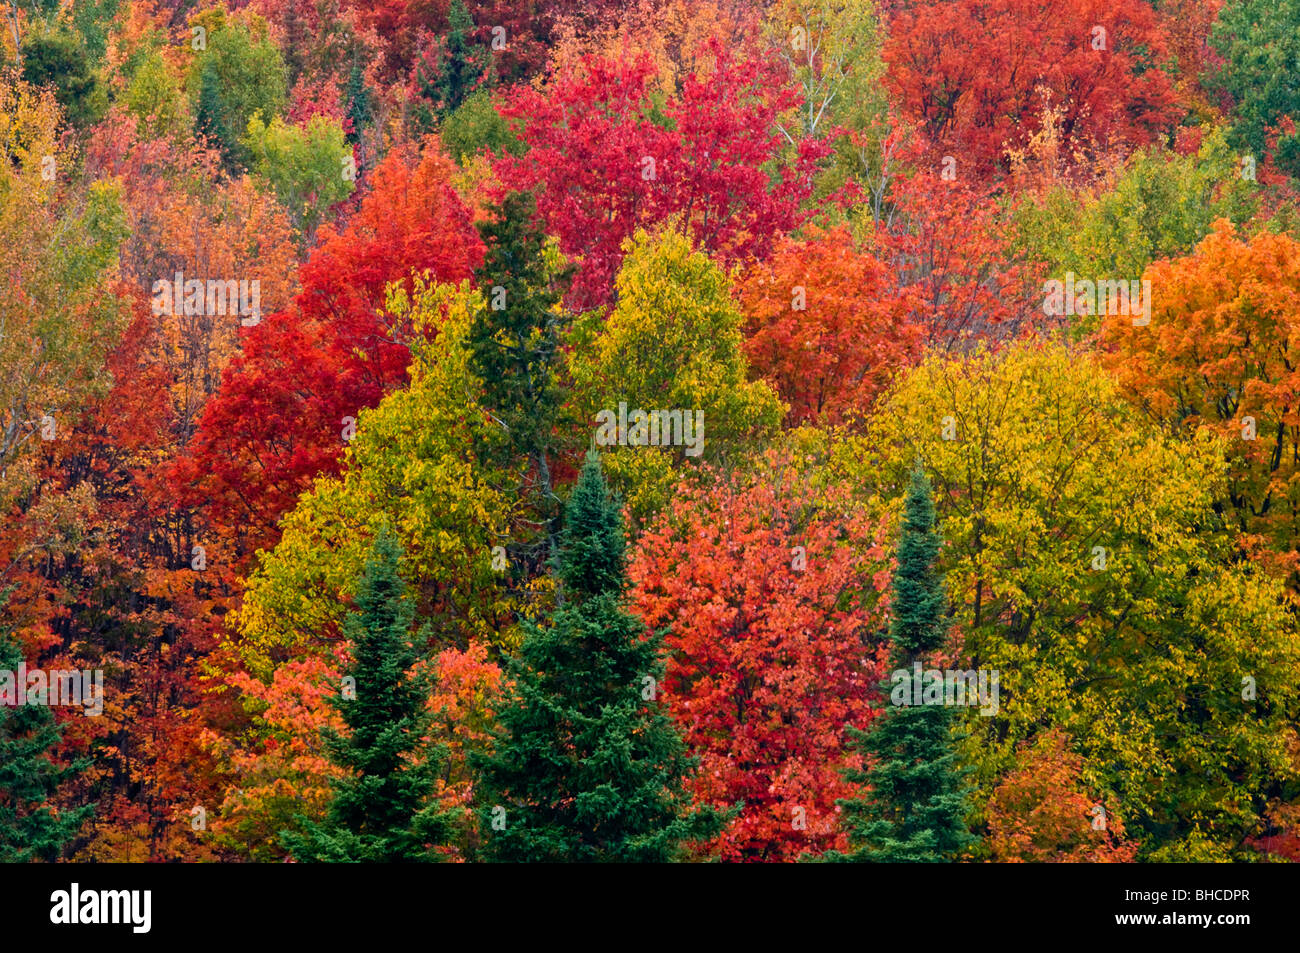 Autumn maple trees and Spruces on hillside, Elliot Lake, Ontario, Canada - Stock Image